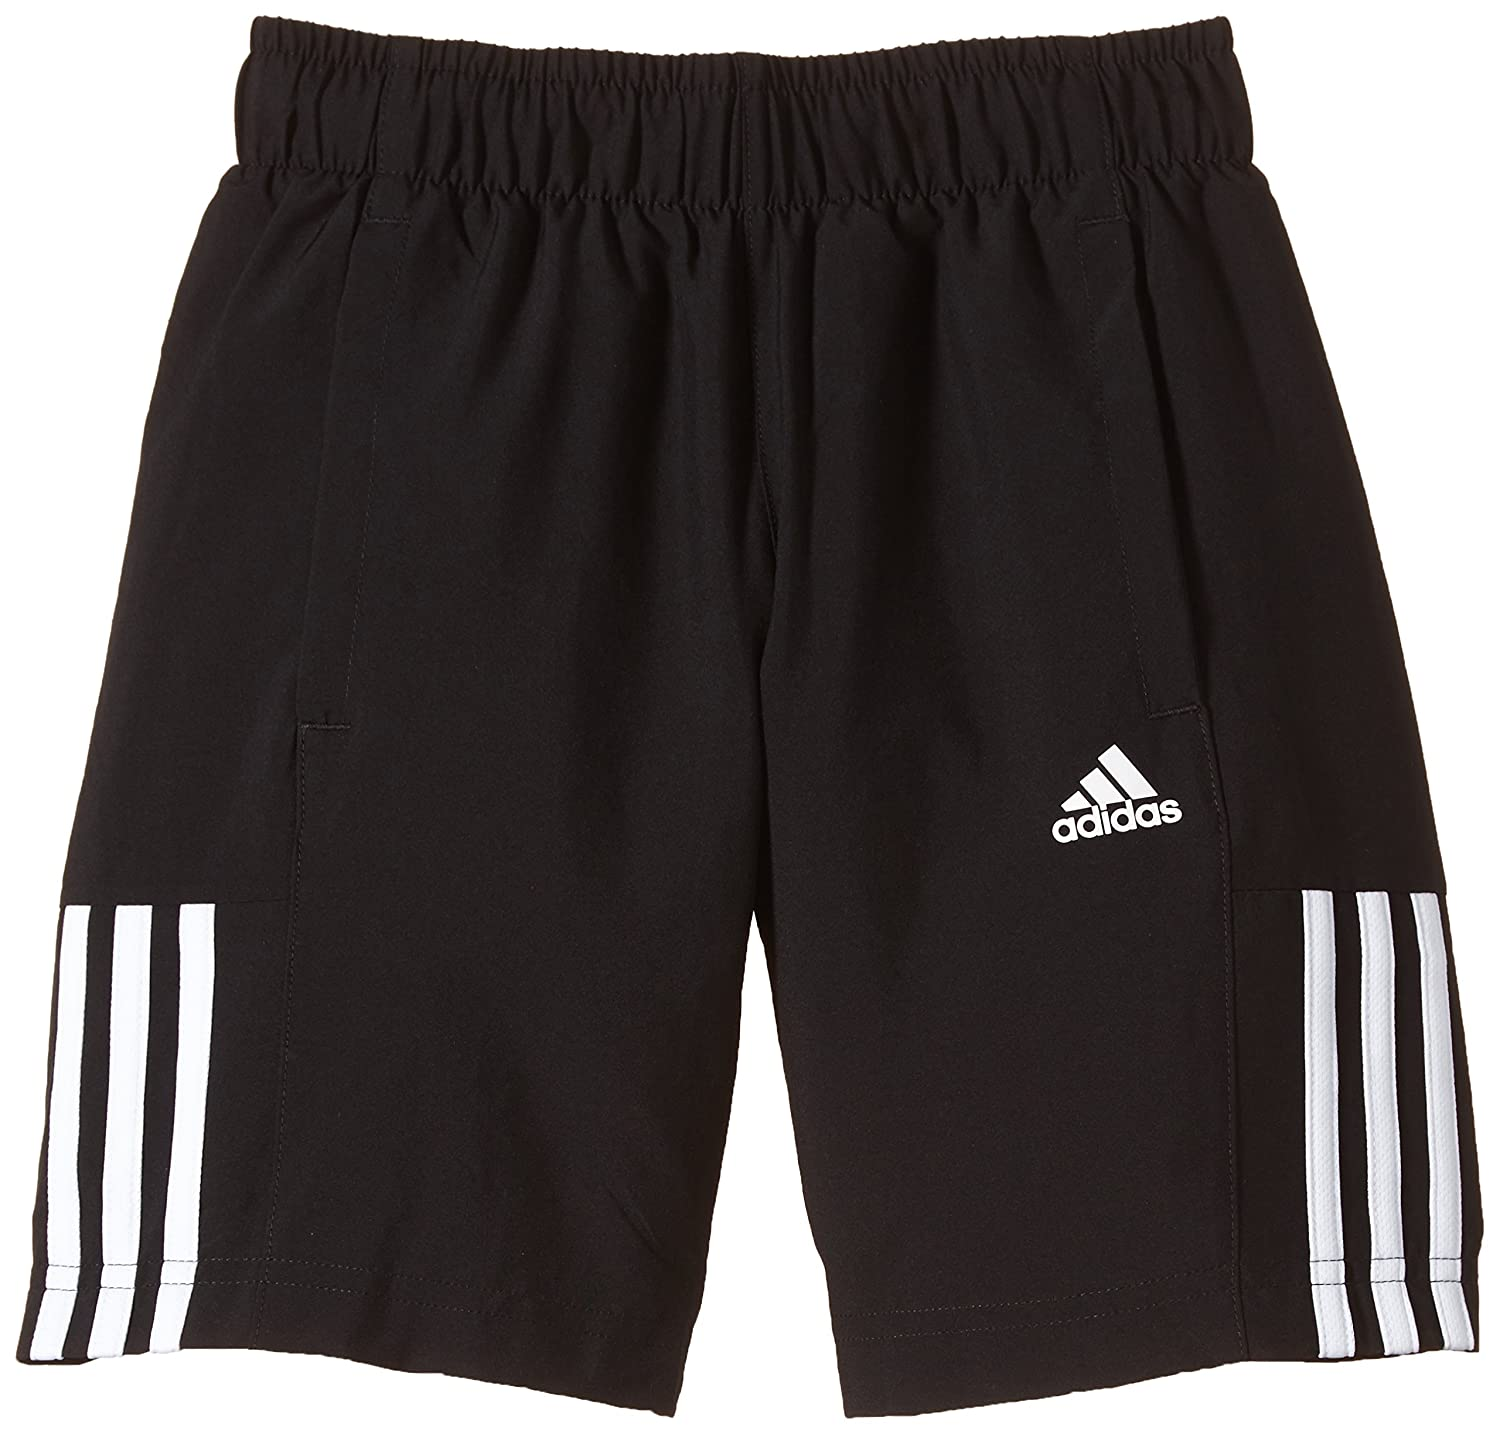 adidas Boys' Essentials Mid 3-Stripes Woven Shorts Size 140 S23288